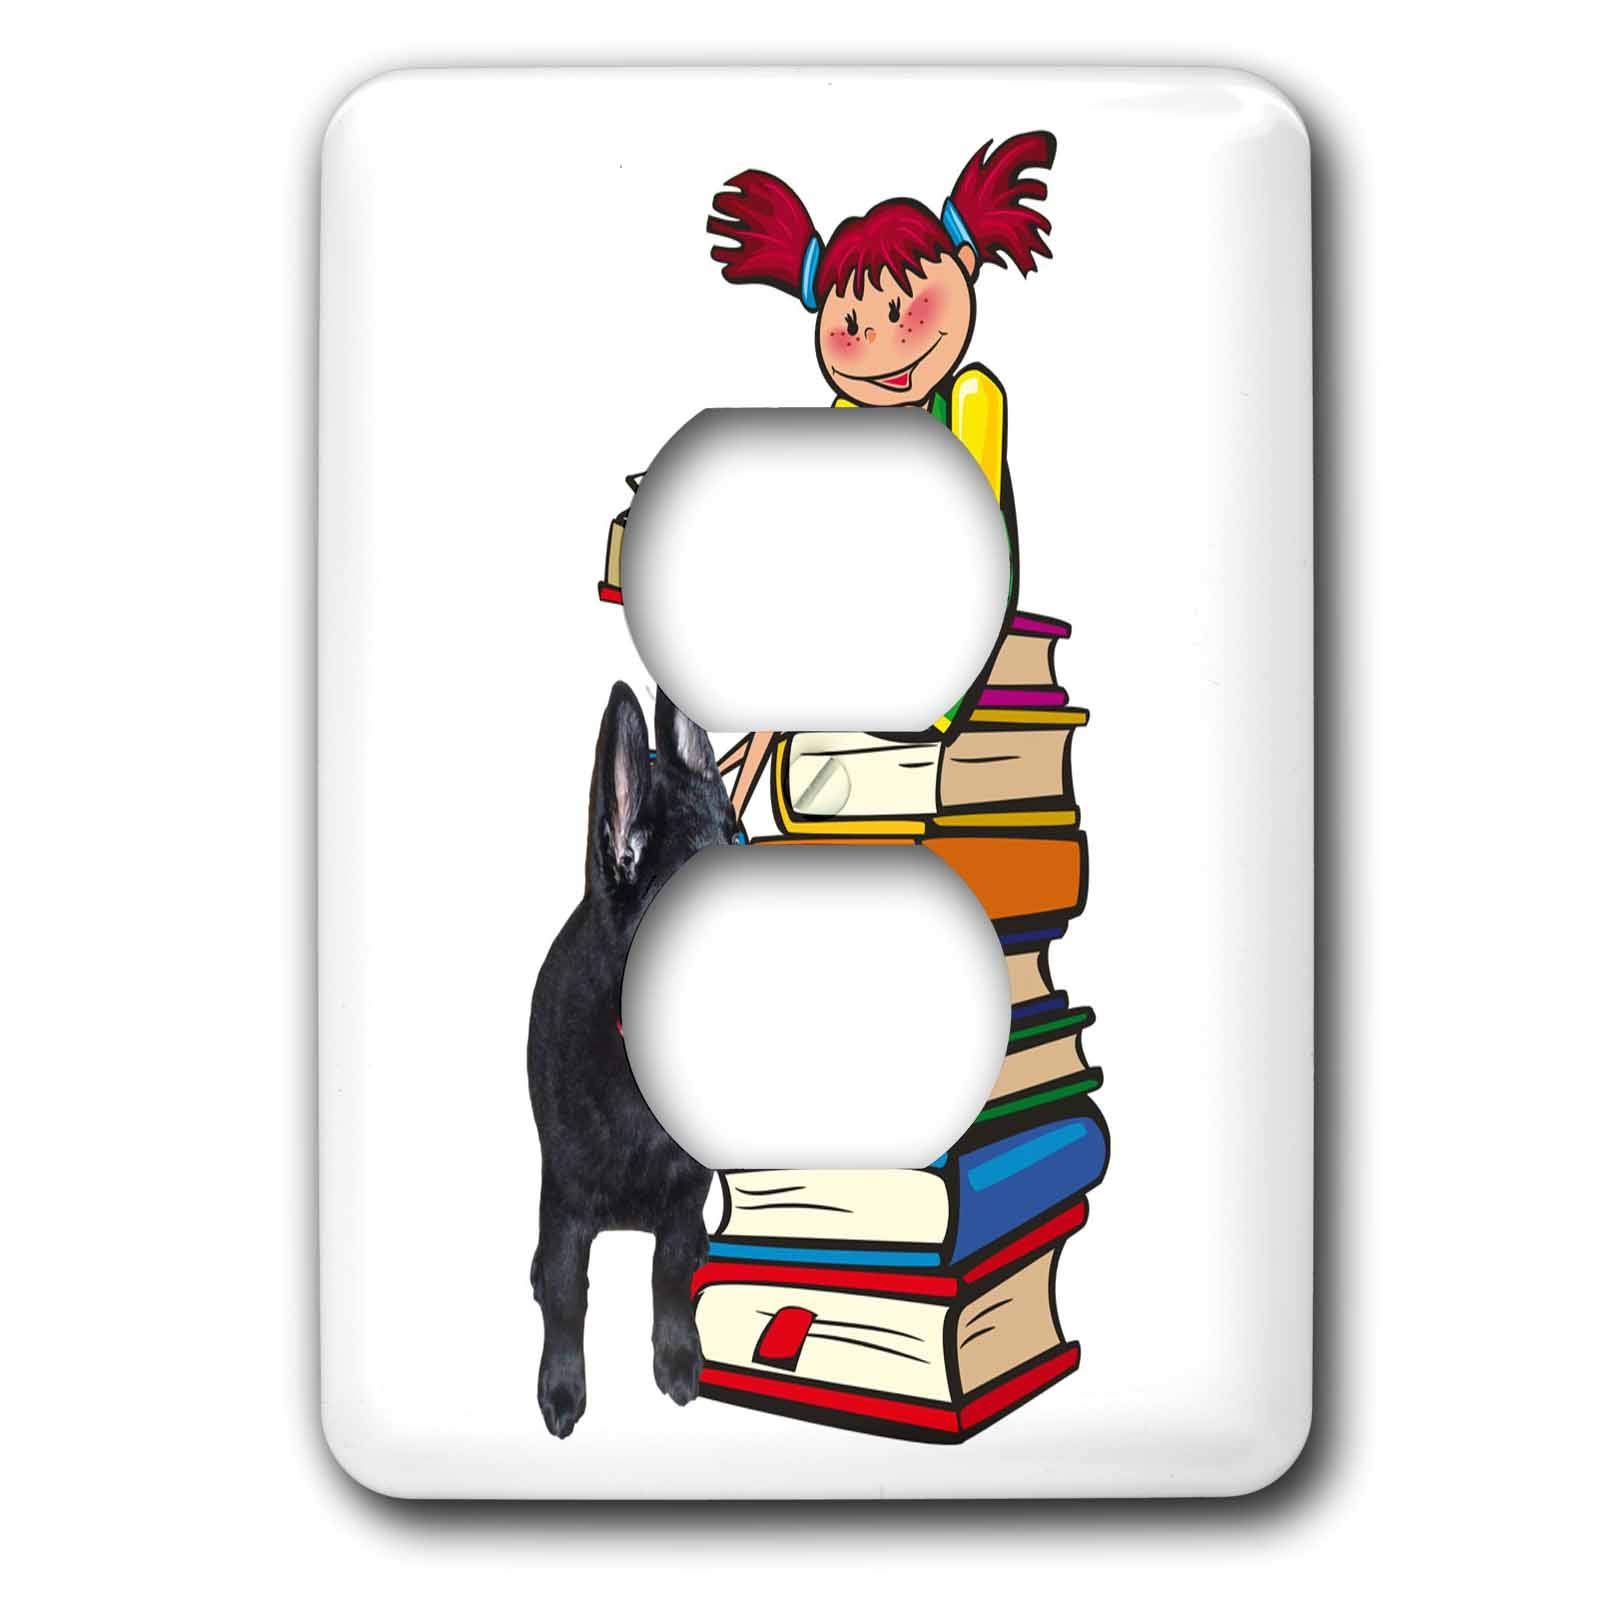 3dRose Sandy Mertens Dog Designs - Study Buddy GSD Puppy with School Girl on Books, 3drsmm - Light Switch Covers - 2 plug outlet cover (lsp_295174_6)